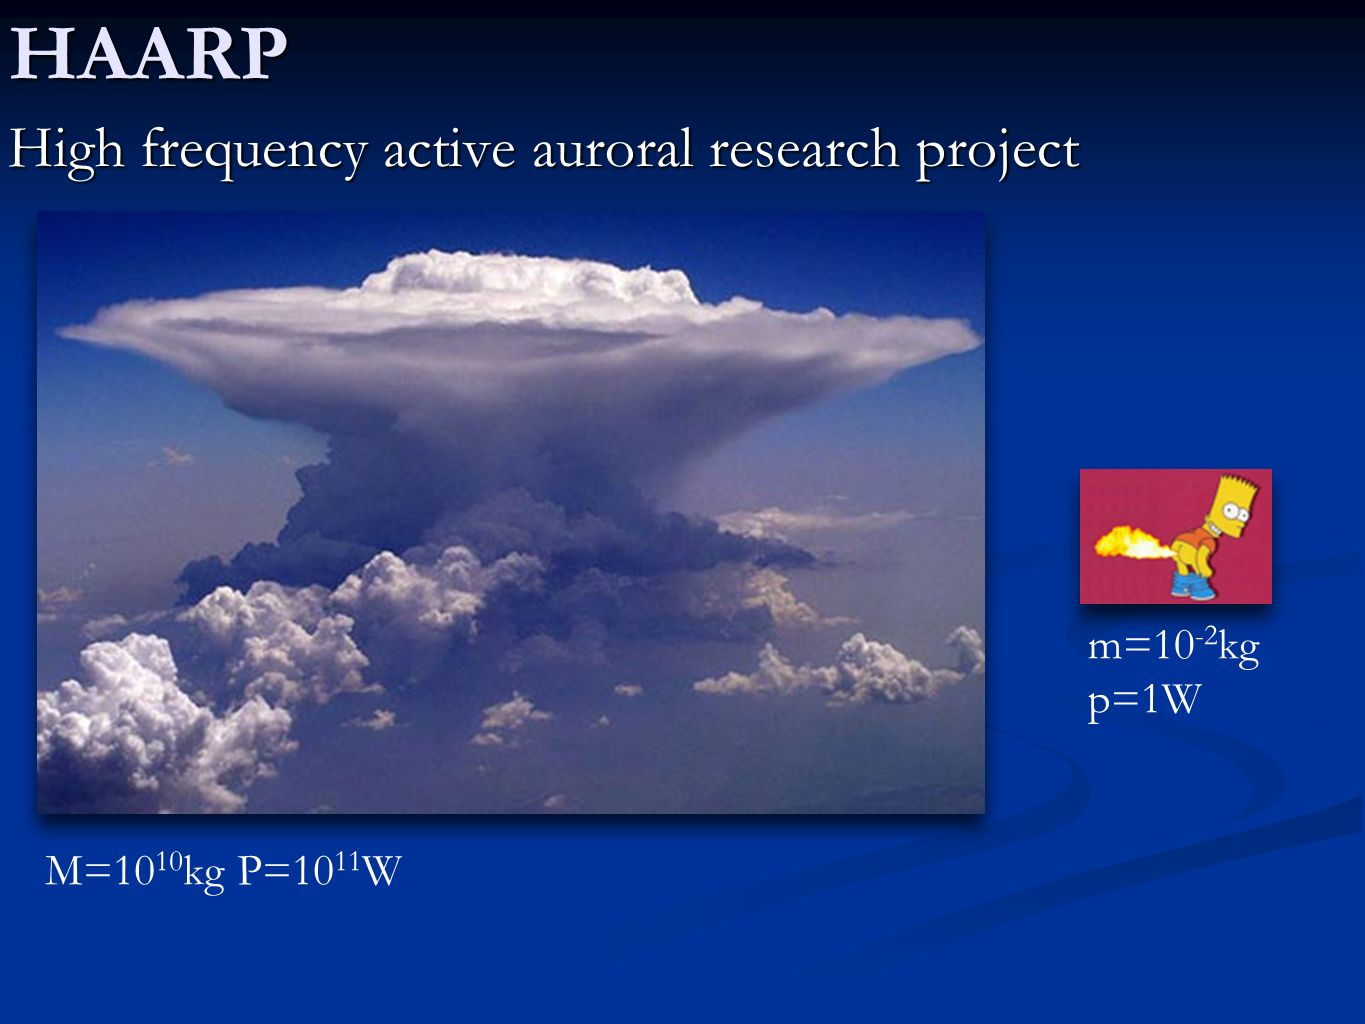 HAARP High frequency active auroral research project m=10-2kg p=1W